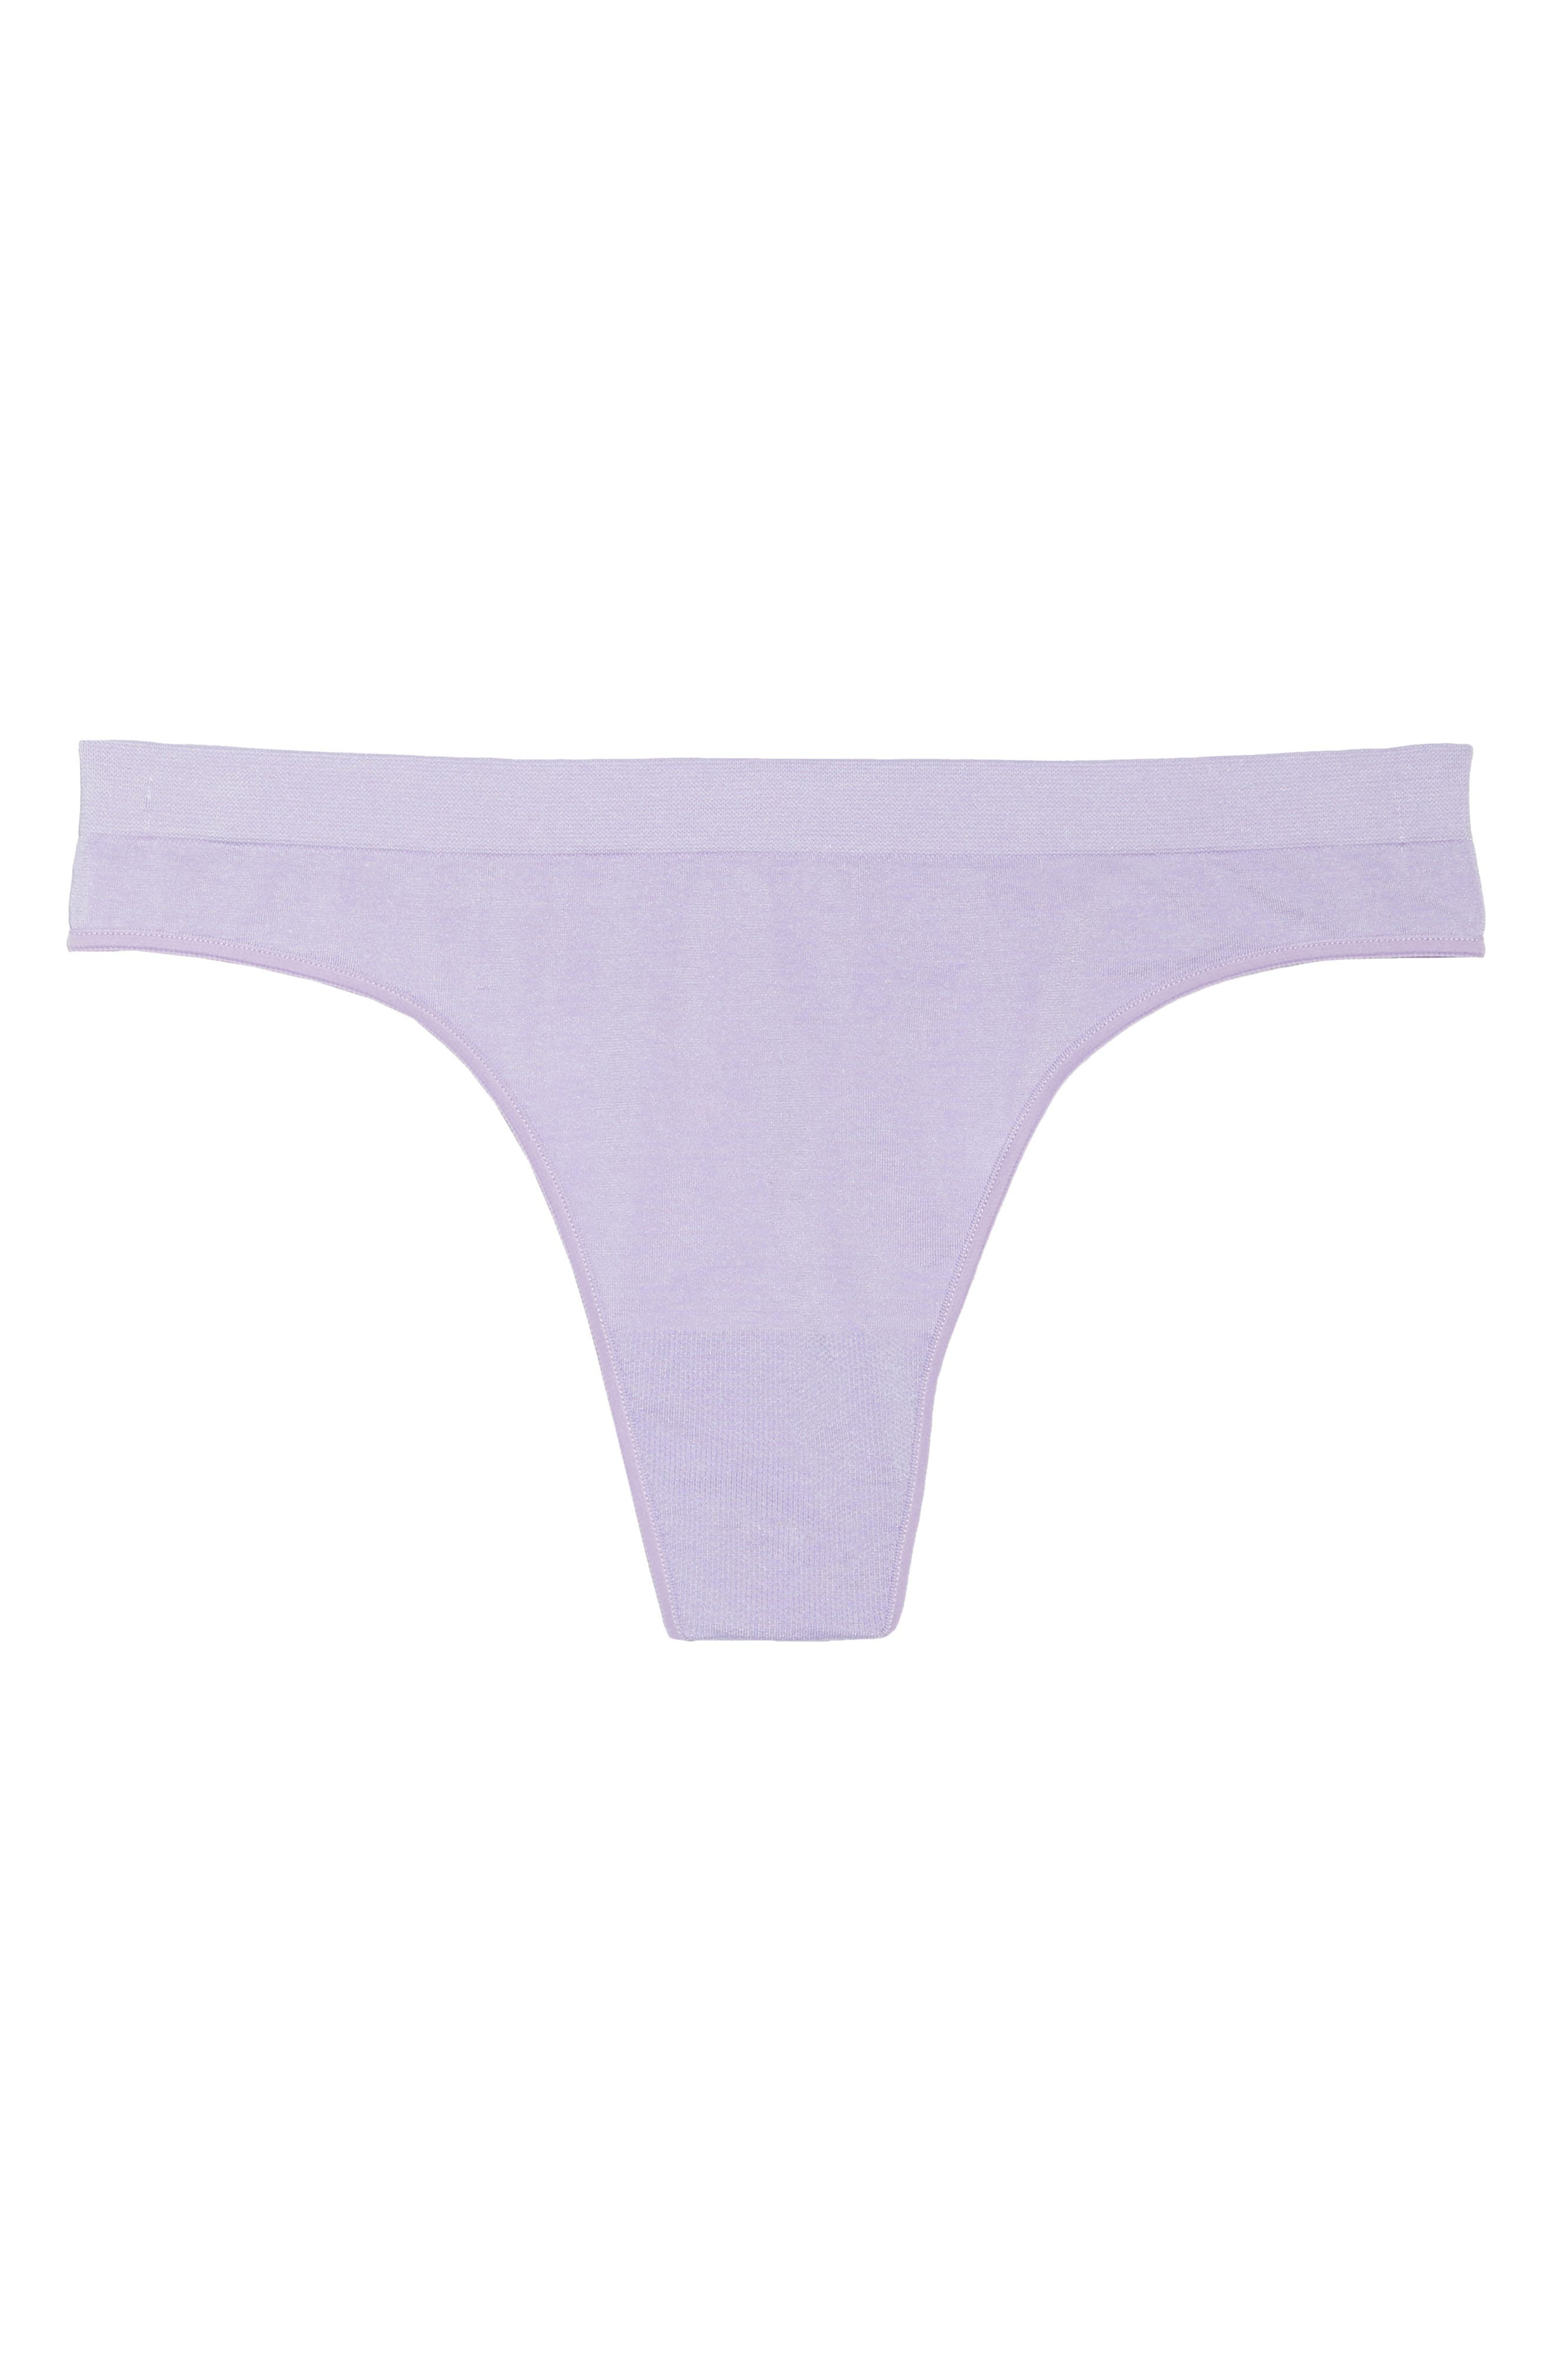 Stretch Thong,                             Alternate thumbnail 9, color,                             Purple Rose Heather